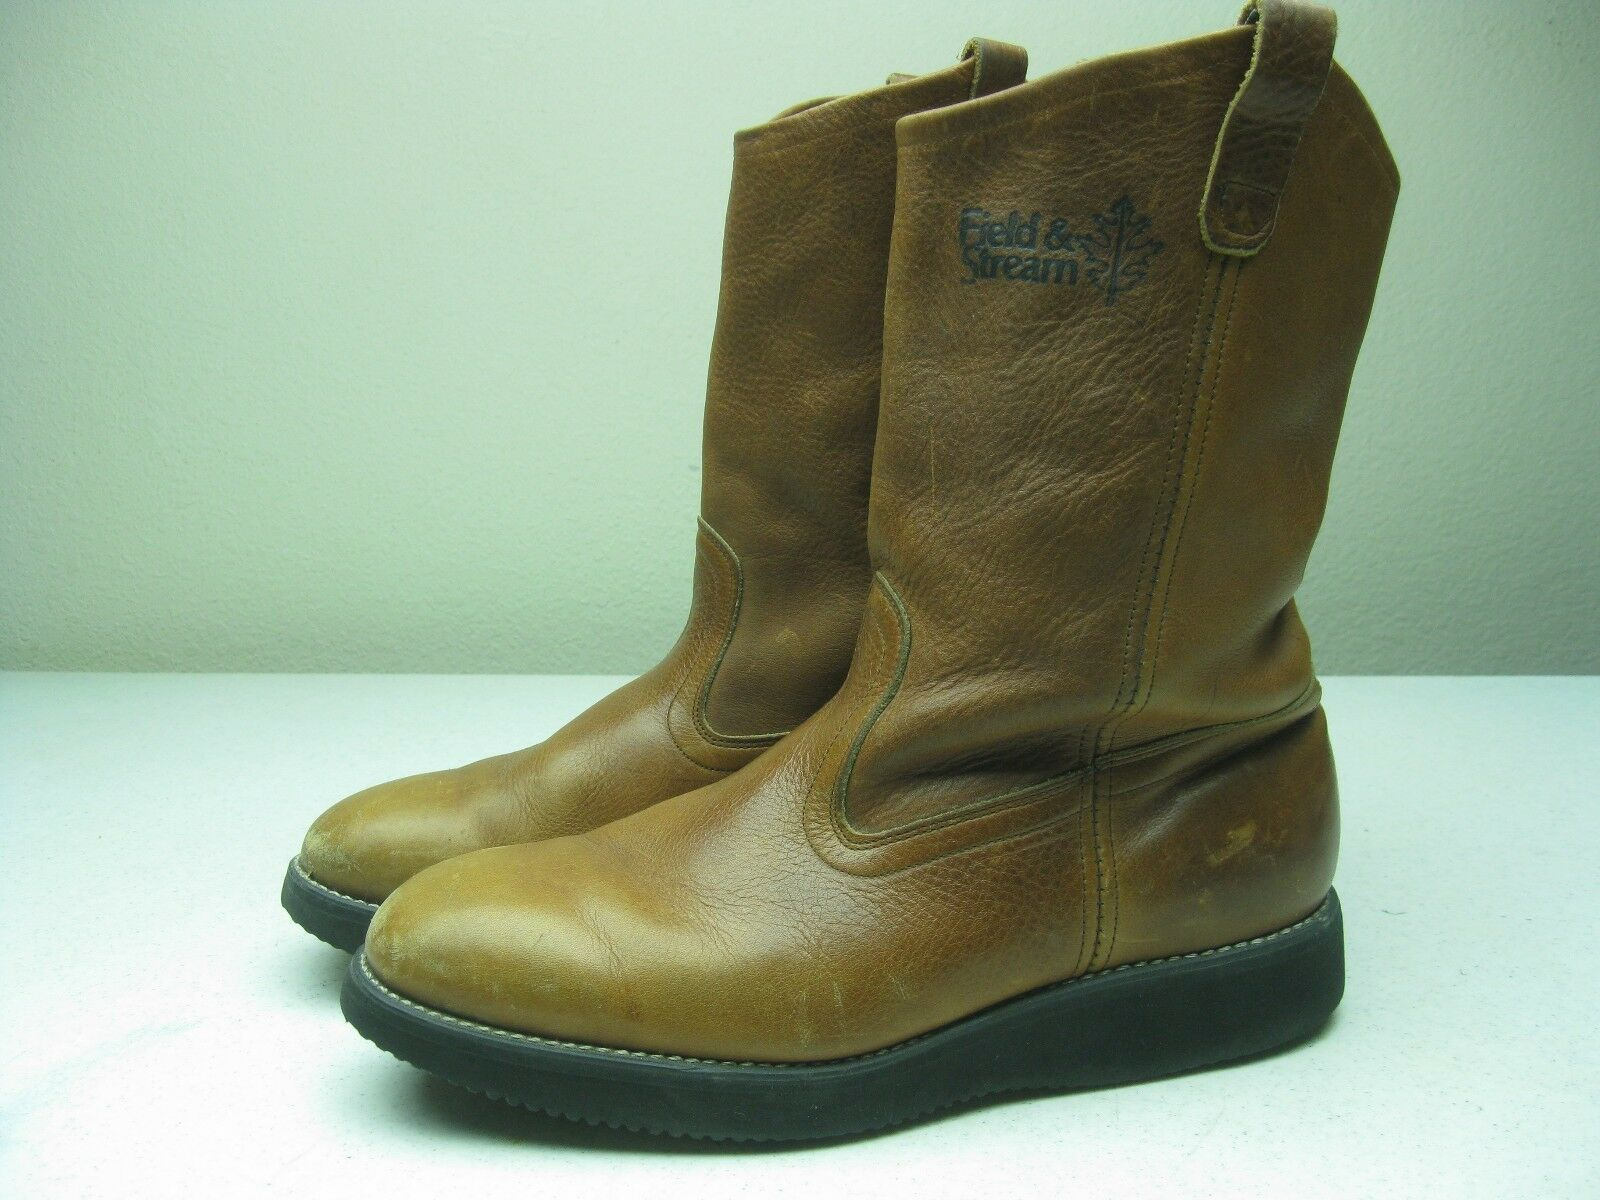 DISTRESSED FIELD AND STREAM HONEY BROWN HEVA TECH ENGINEER BOOTS Uomo size 12 W